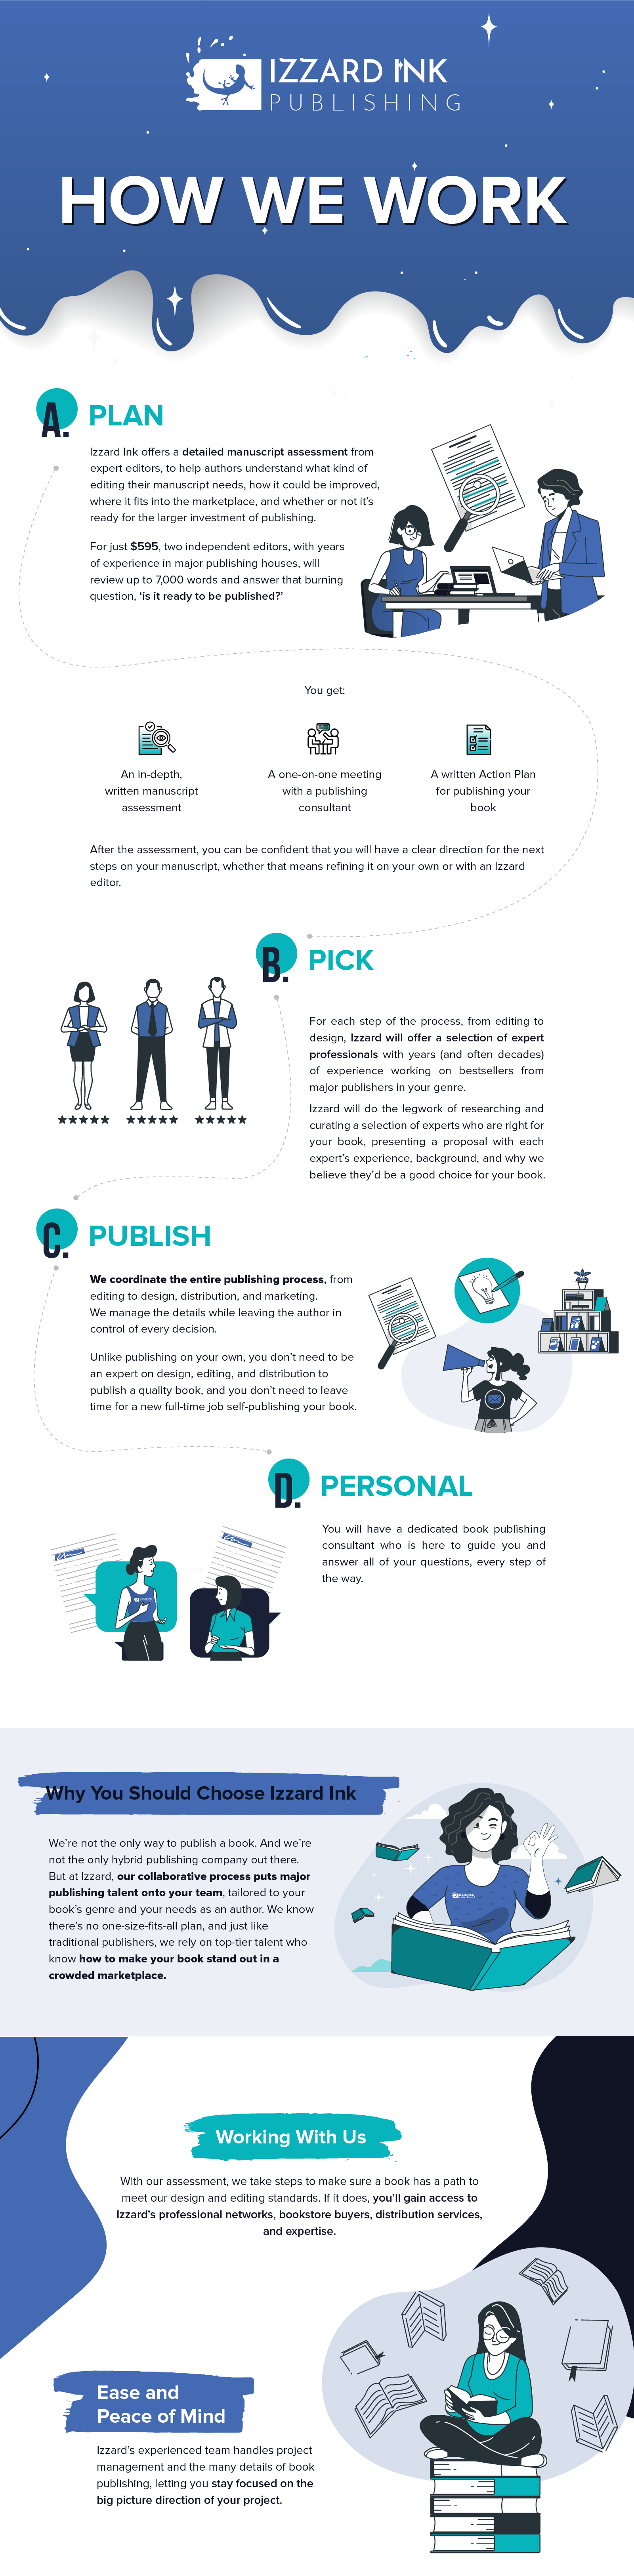 How We Work Infographic